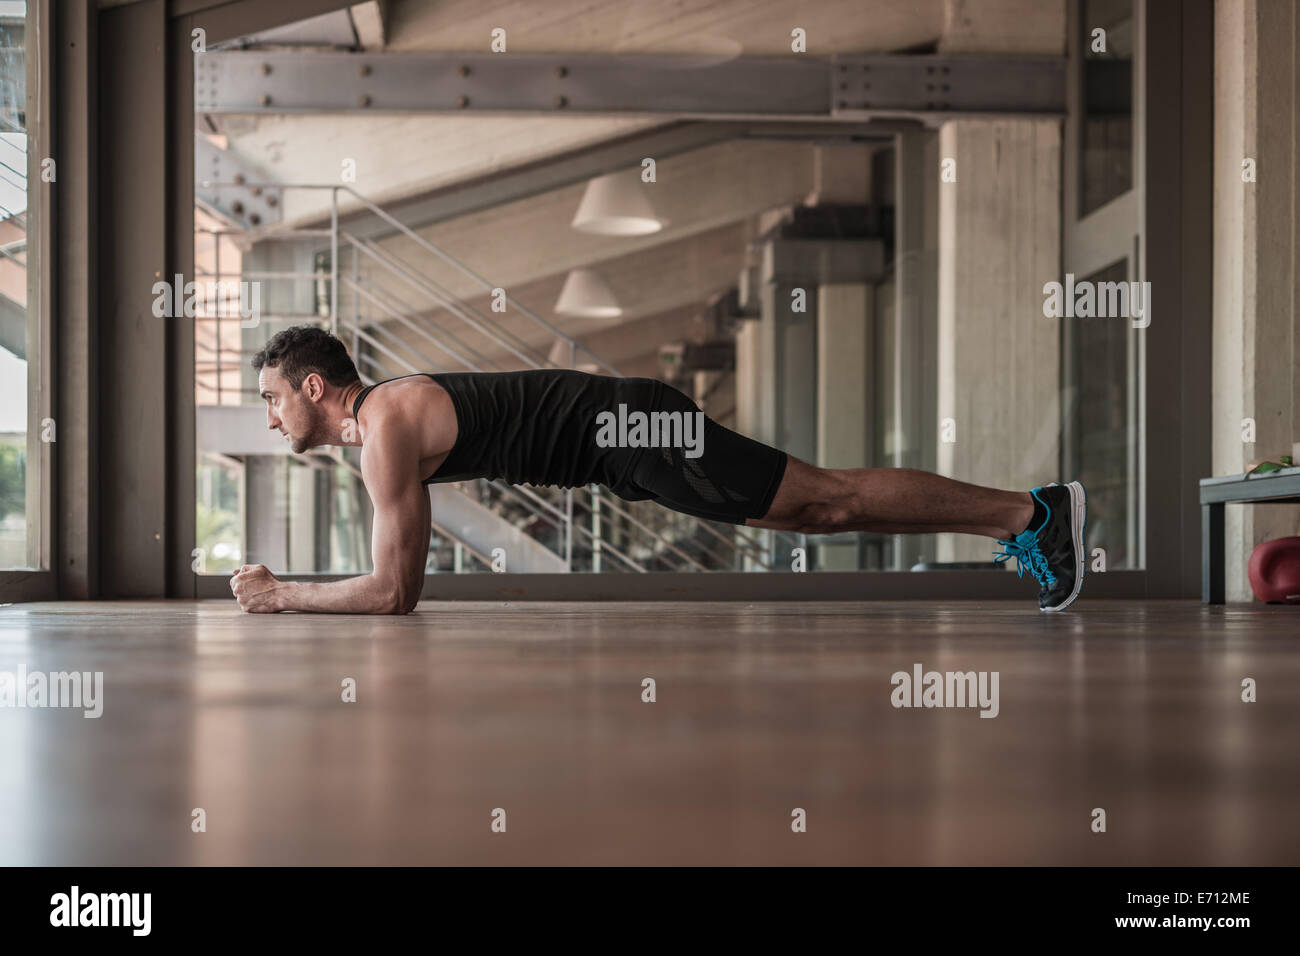 Mid adult man doing plank exercise - Stock Image